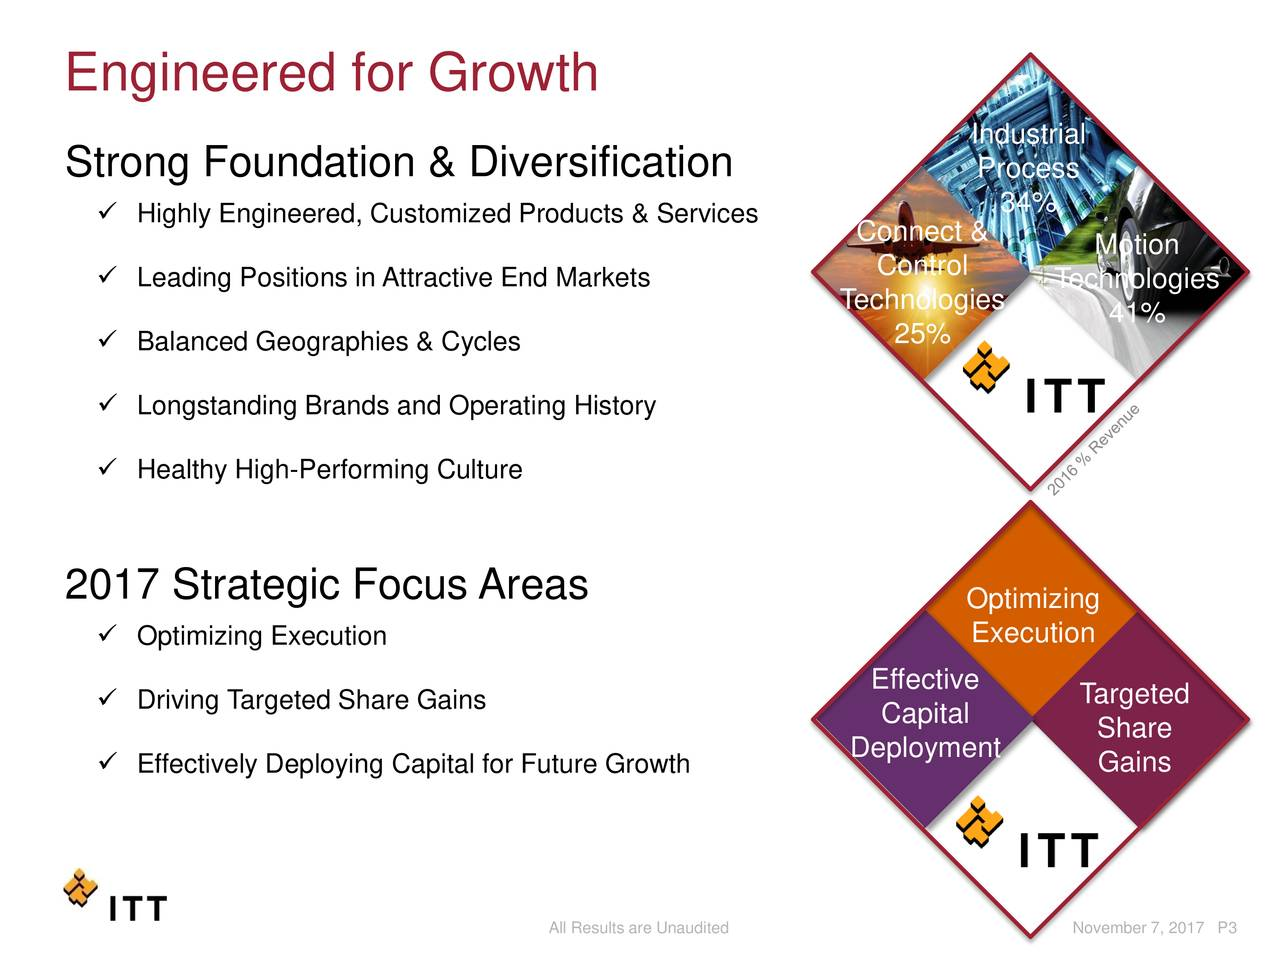 Industrial Strong Foundation & Diversification Process 34%  Highly Engineered, Customized Products & Services Connect & Motion  Leading Positions in Attractive End Markets Control Technologies Technologies 41%  Balanced Geographies & Cycles 25%  Longstanding Brands and Operating History  Healthy High-Performing Culture 2017 Strategic Focus Areas Optimizing  Optimizing Execution Execution Effective  Driving Targeted Share Gains Targeted Capital Share  Effectively Deploying Capital for Future Growth Deployment Gains All Results are Unaudited November 7, 2017 P3